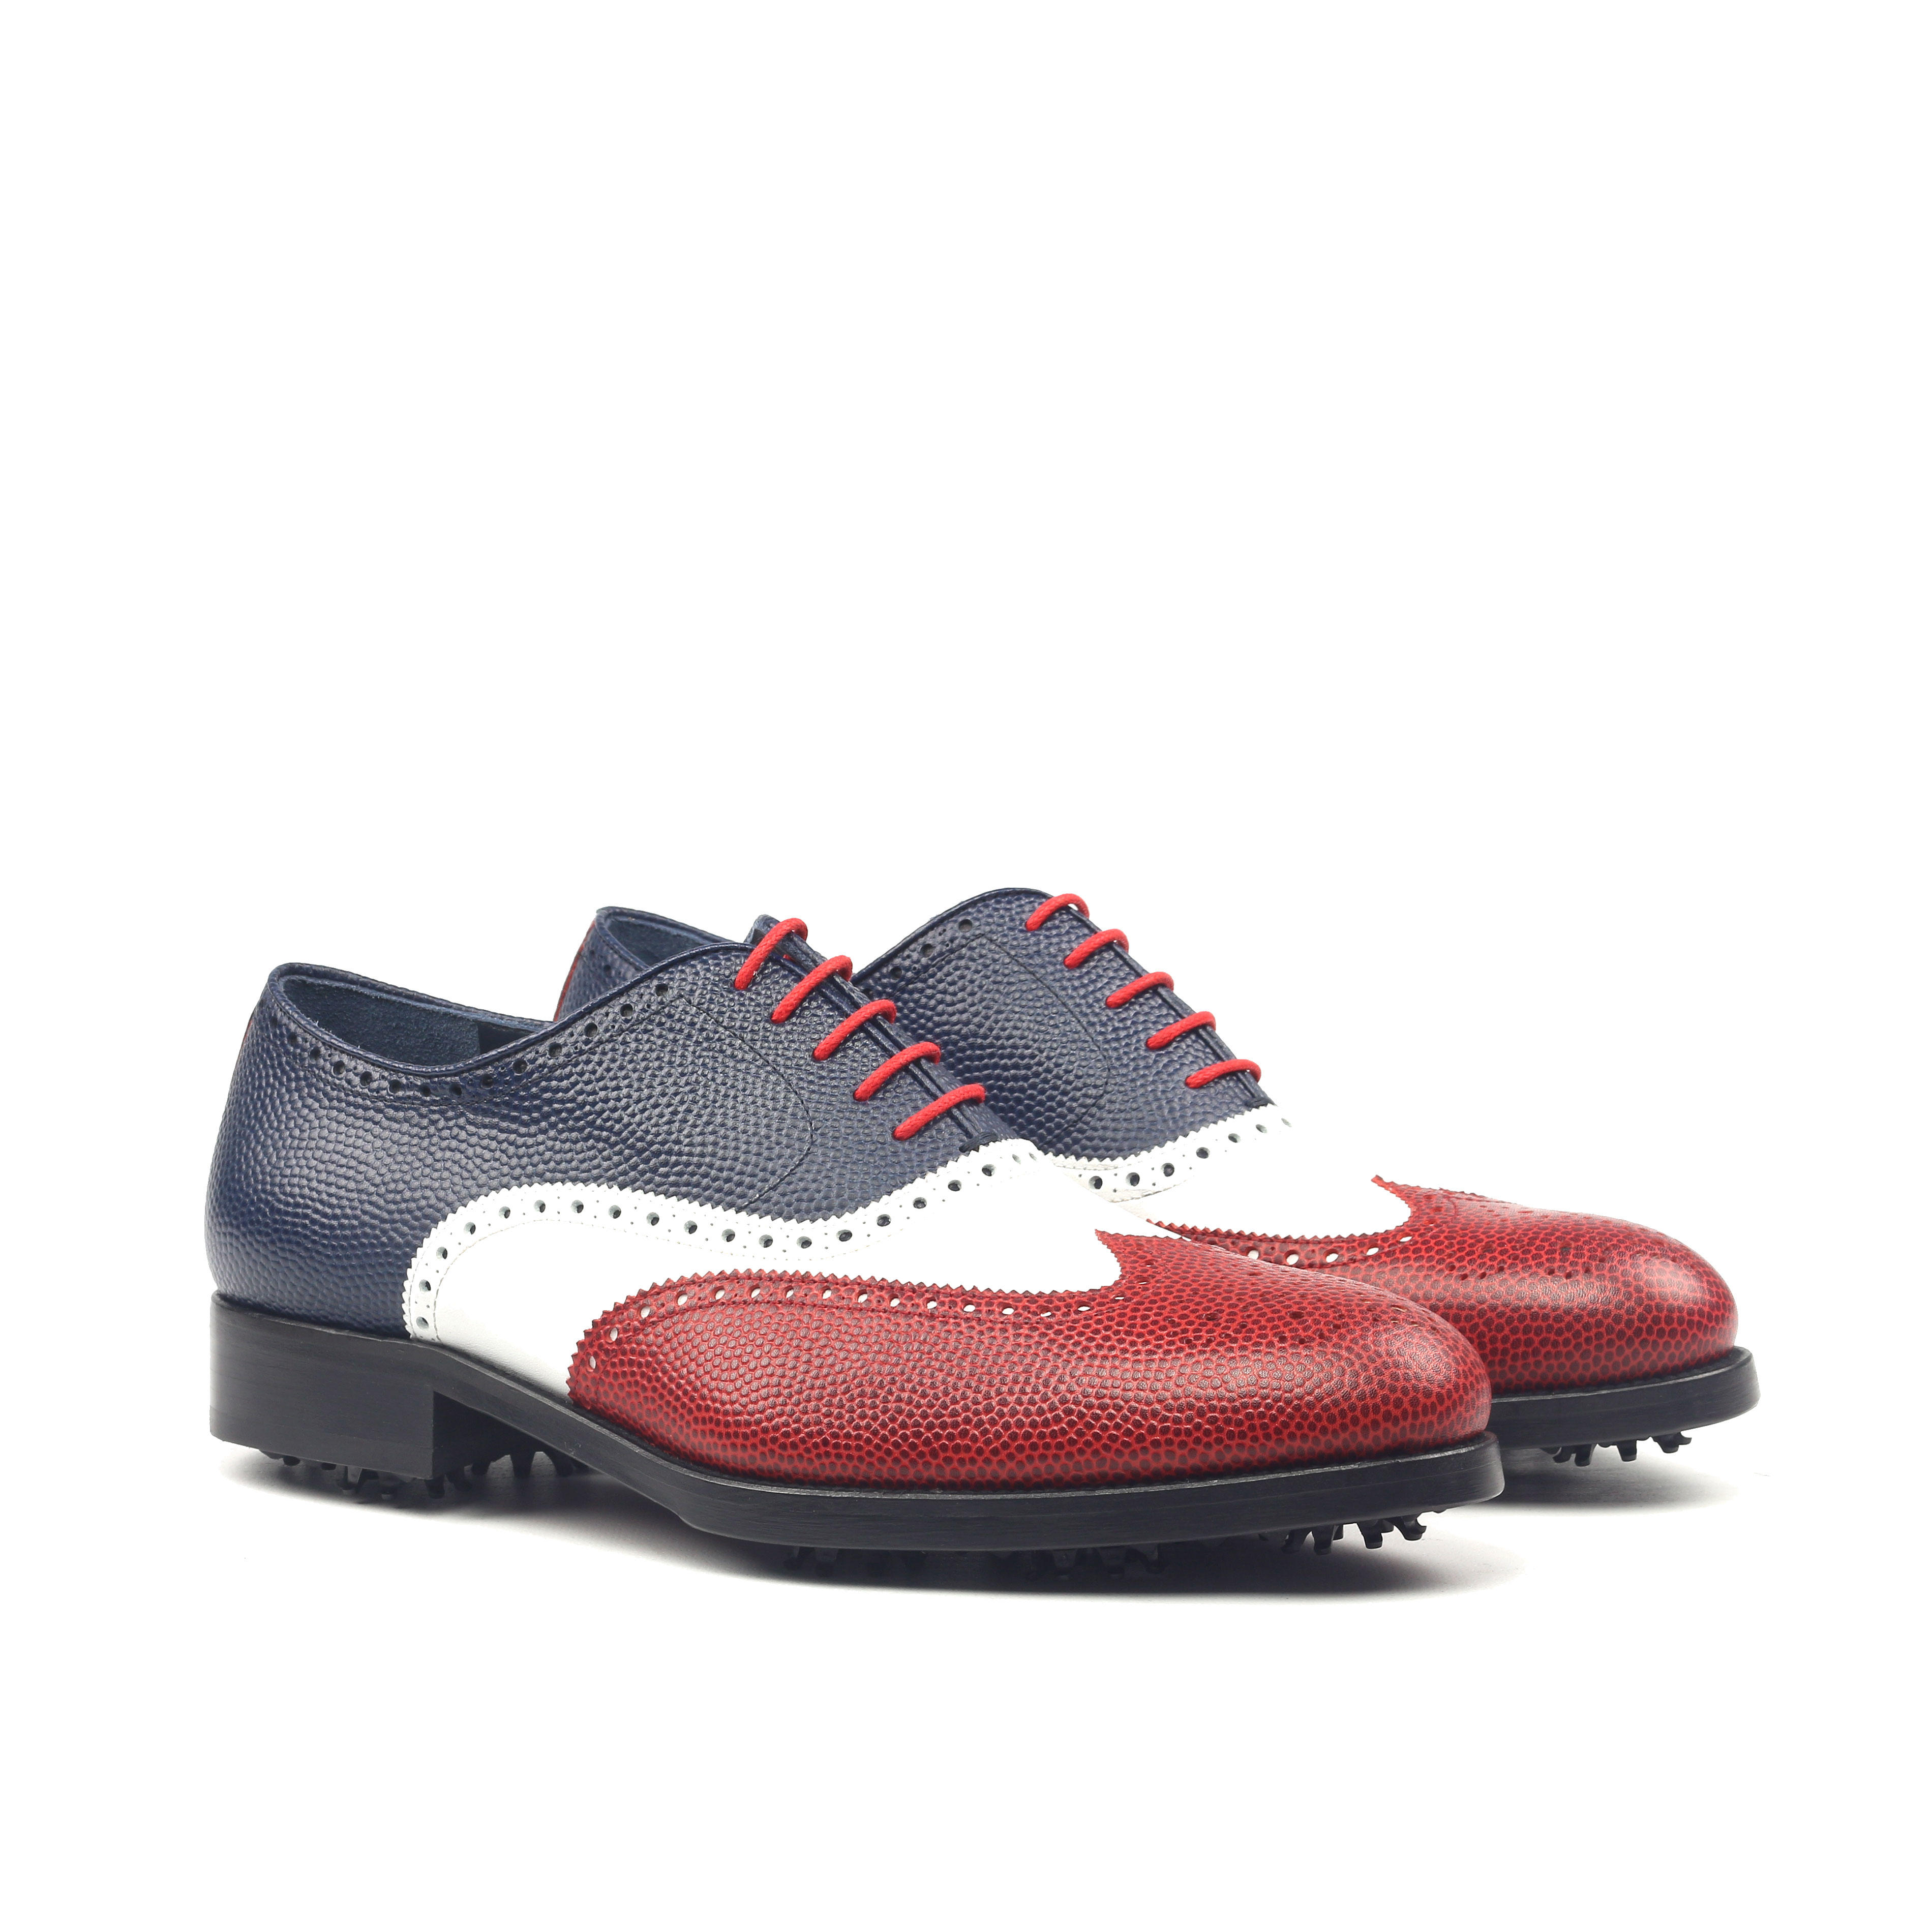 MANOR OF LONDON 'The Marylebone' Tri-Colour Pebble Grain Golfing Brogue Luxury Custom Initials Monogrammed Front Side View